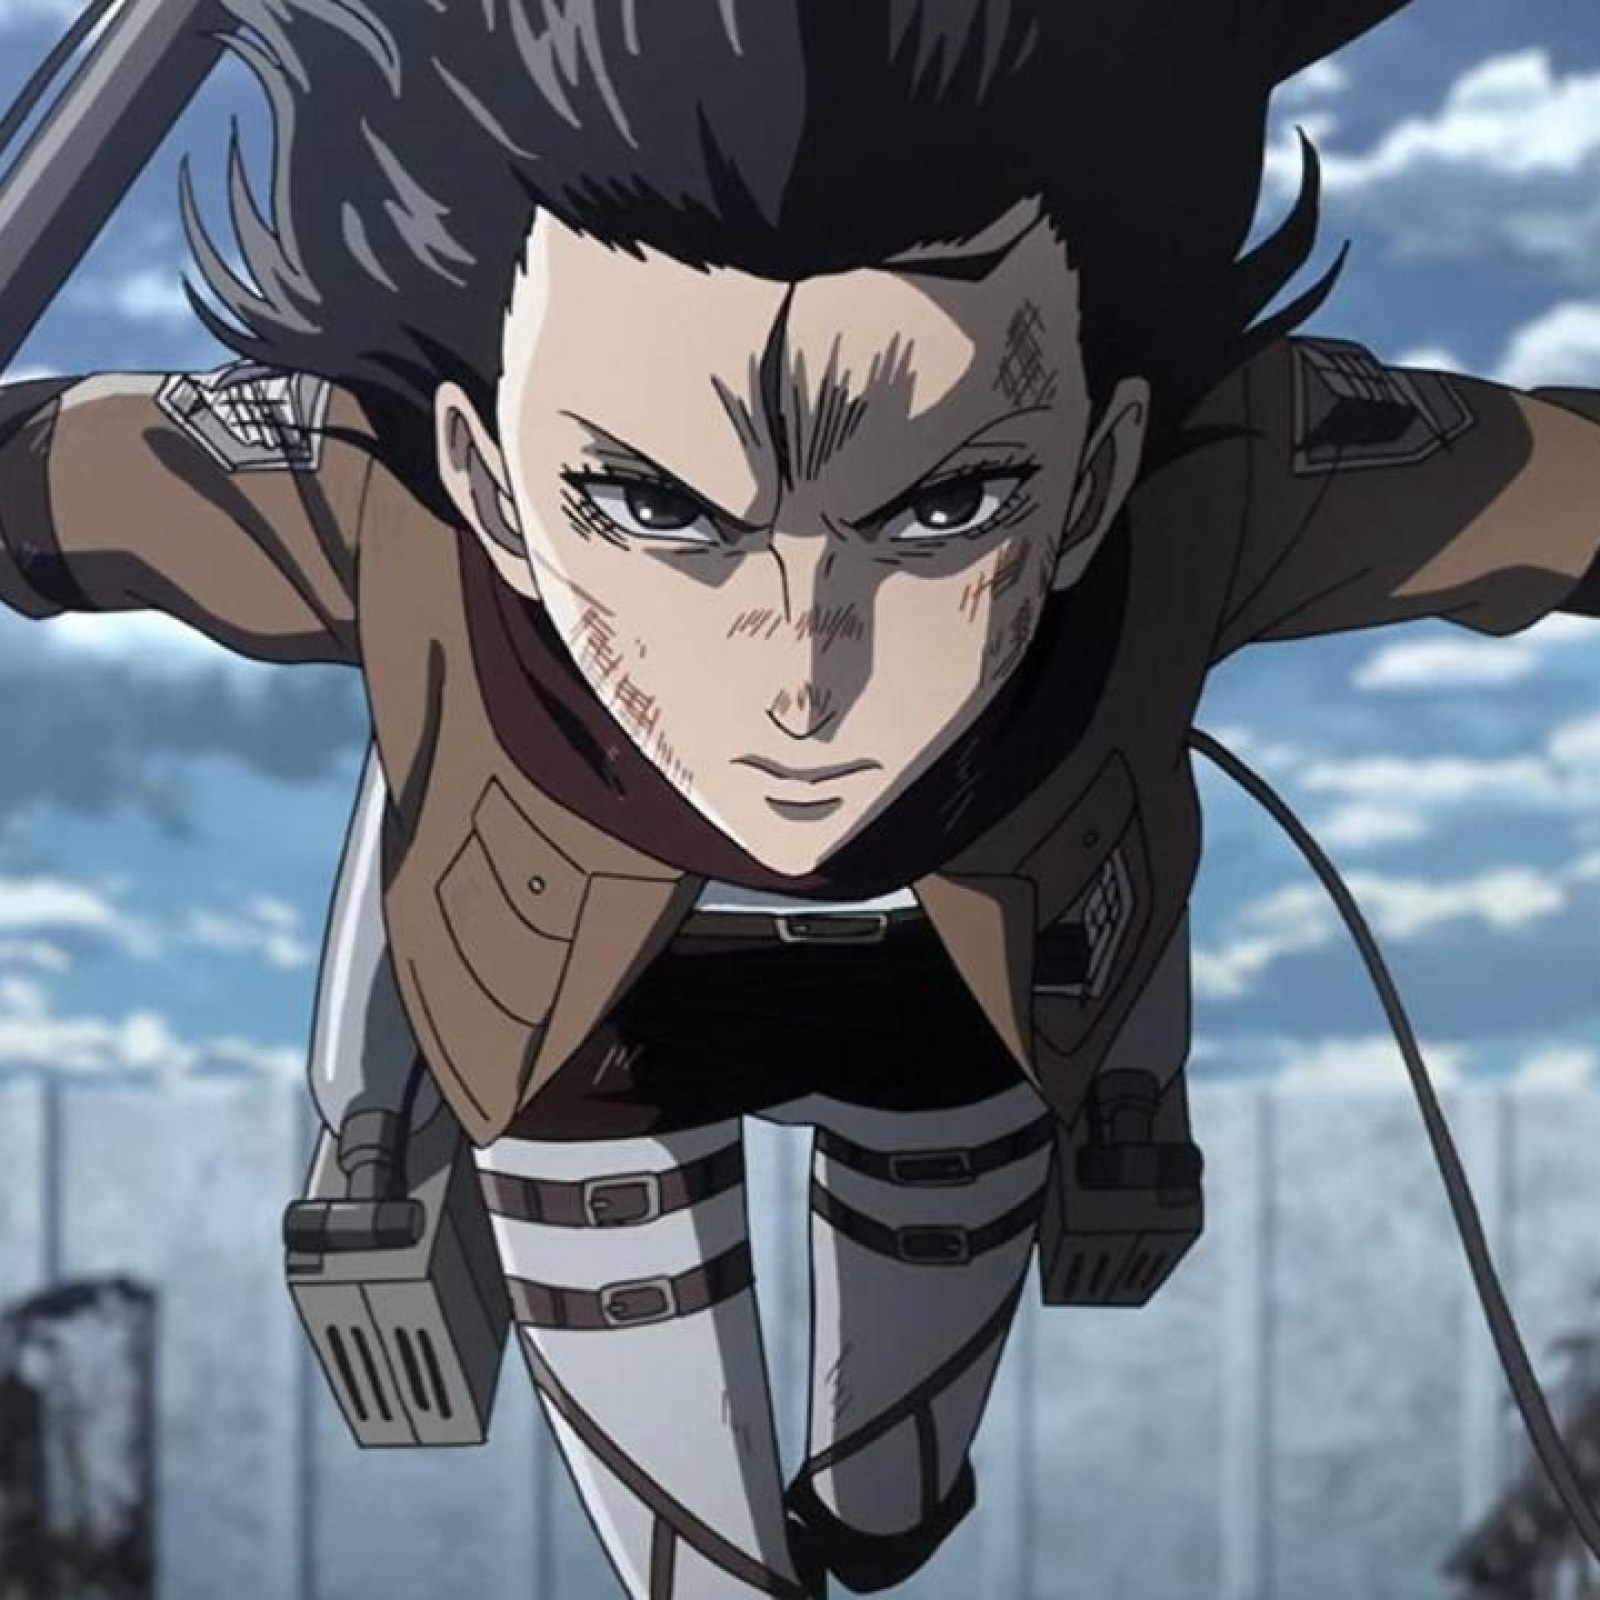 Attack On Titan Season 4 Release Date Has The Final Season Been Delayed